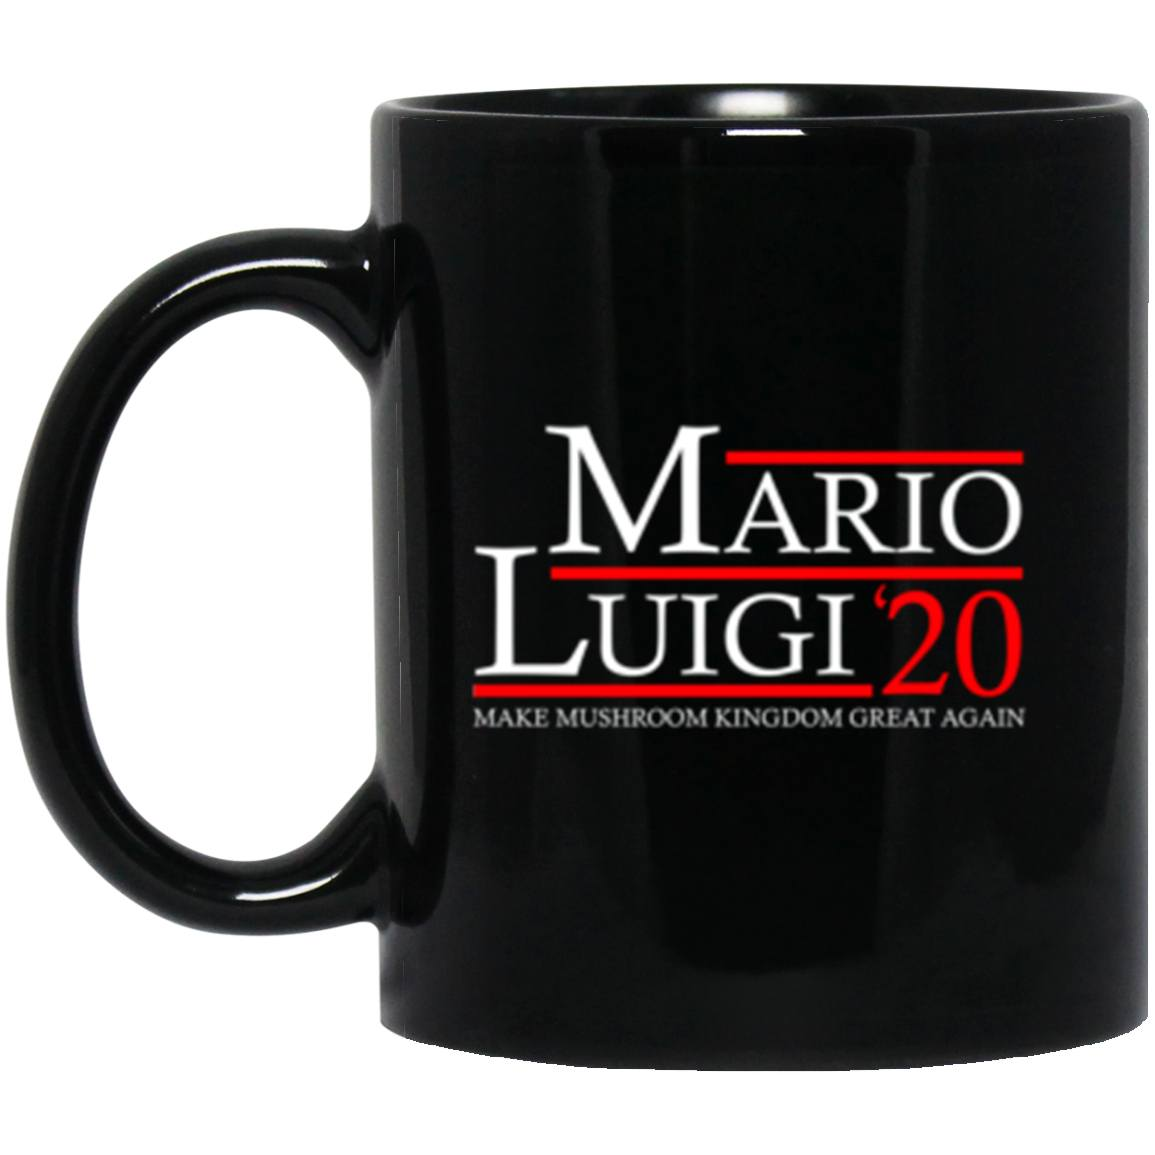 Drinkware - Mario Luigi 20 Black Mug 11oz (2-sided)